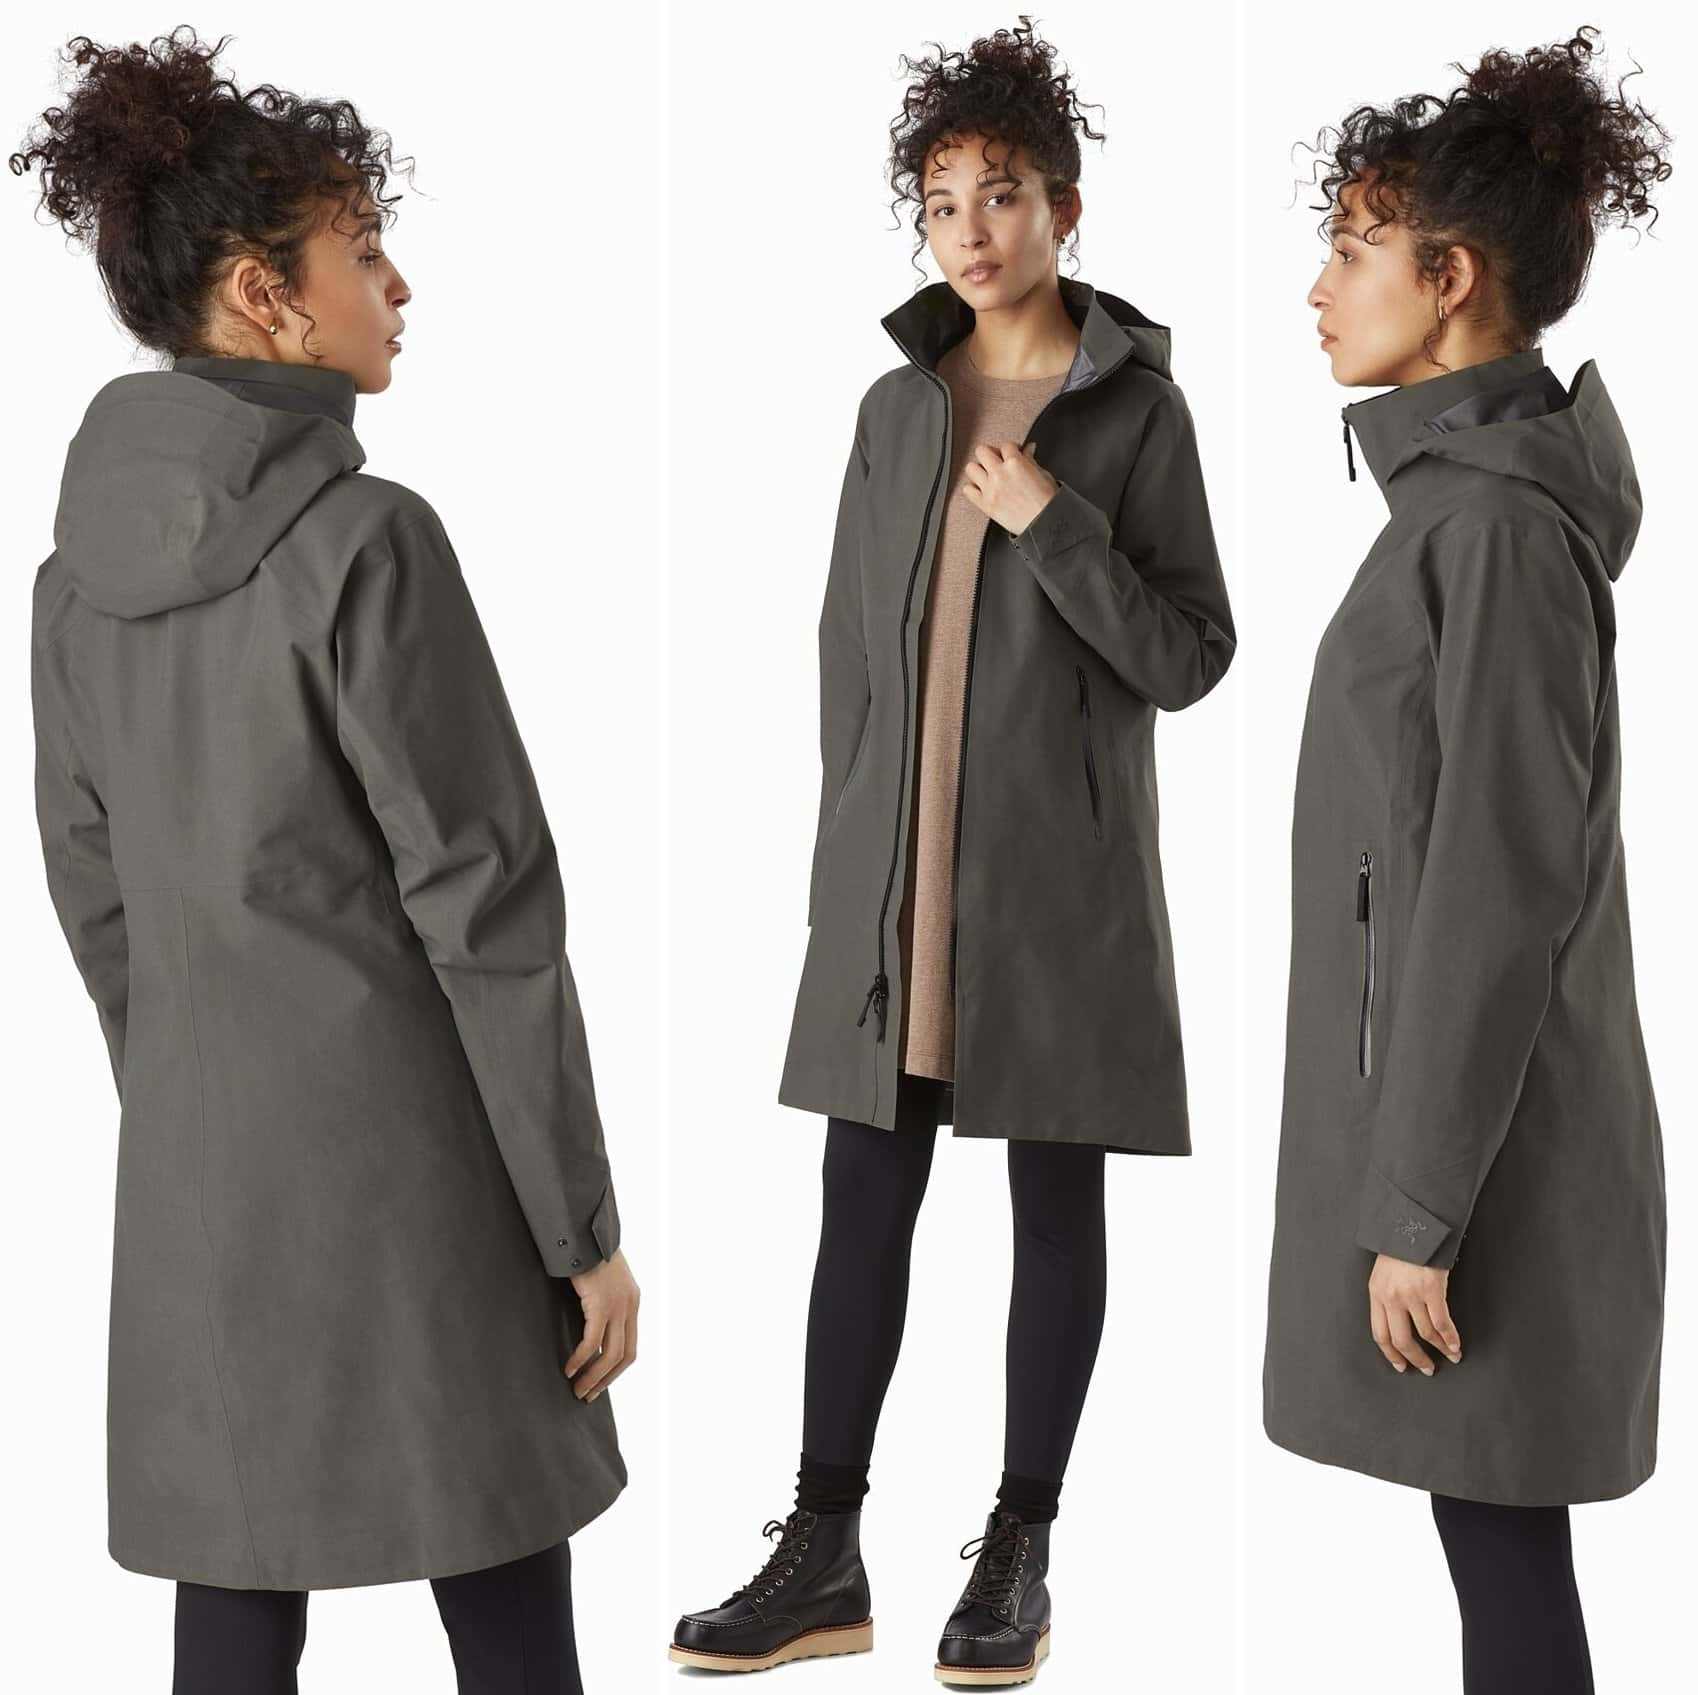 This long women's GORE-TEX raincoat is trim fitting and designed for inclement weather in urban environments